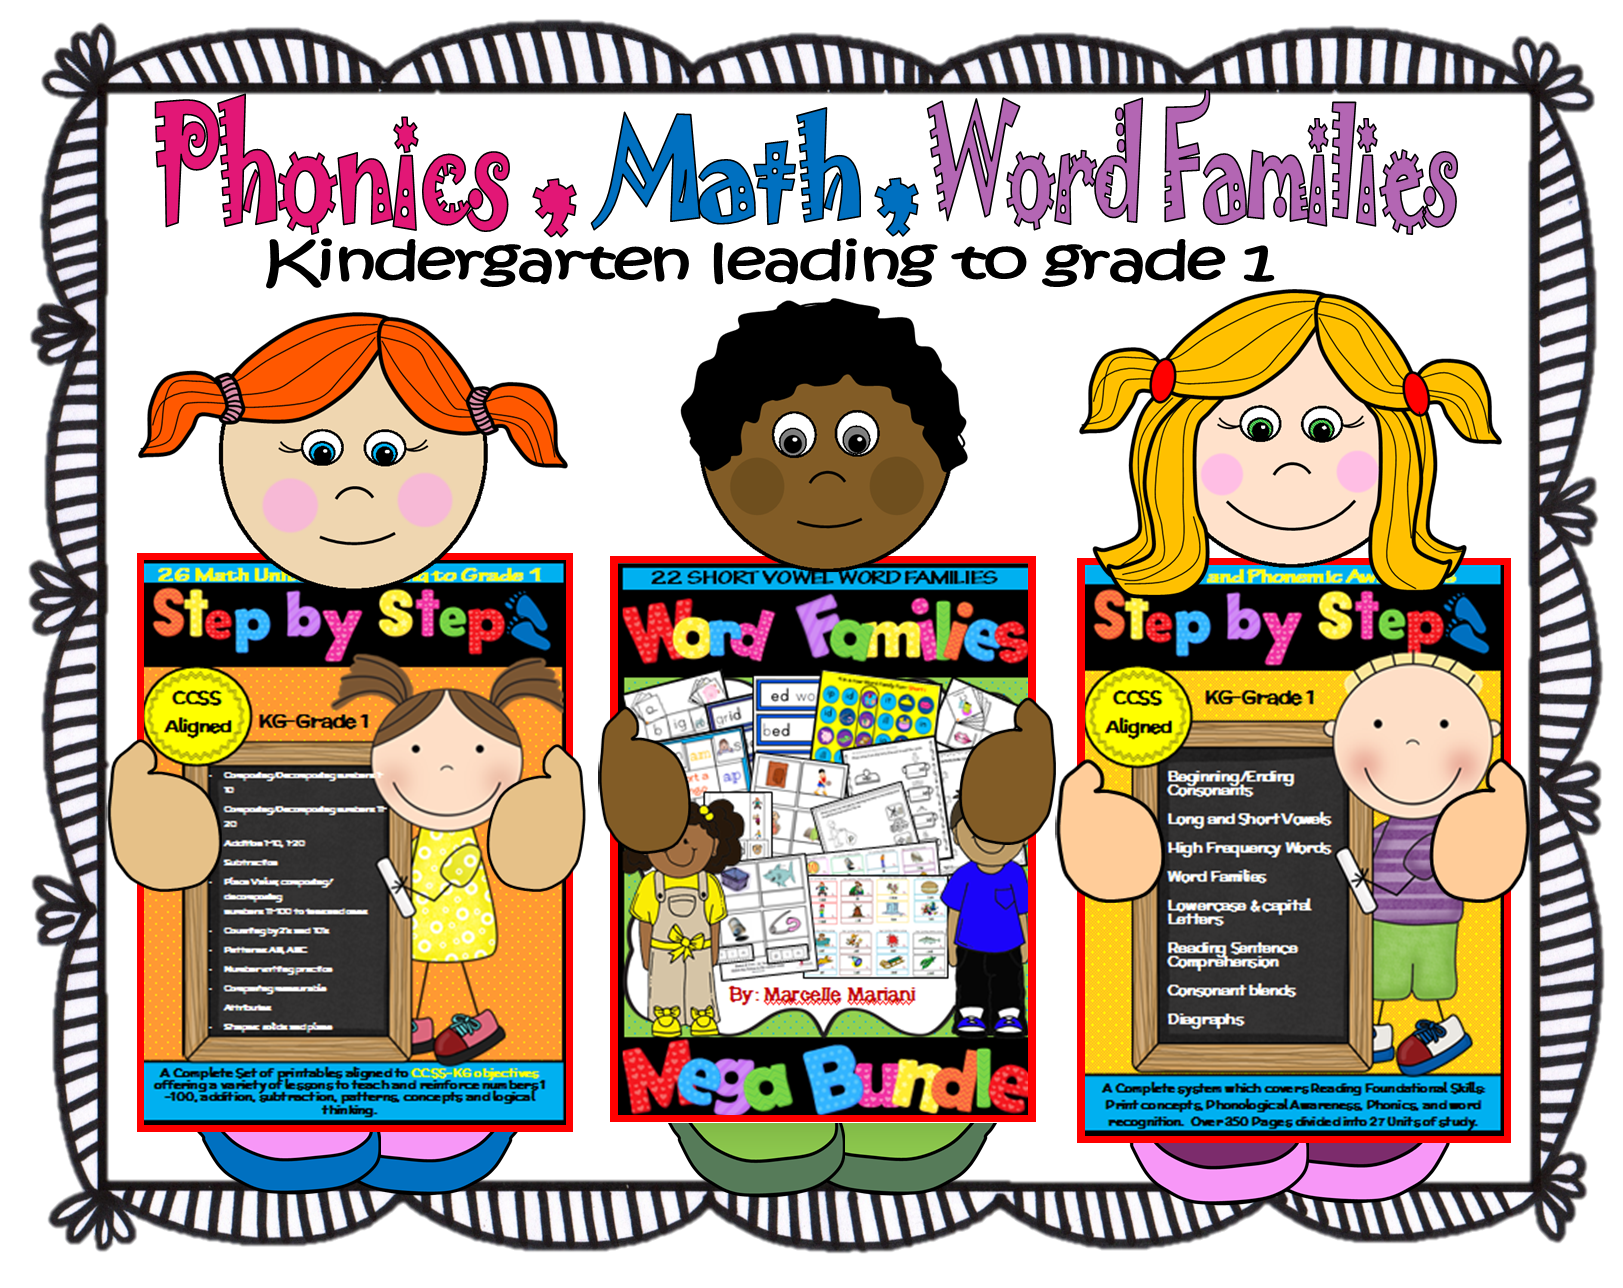 A Year S Worth Of Phonics Math And Word Families For